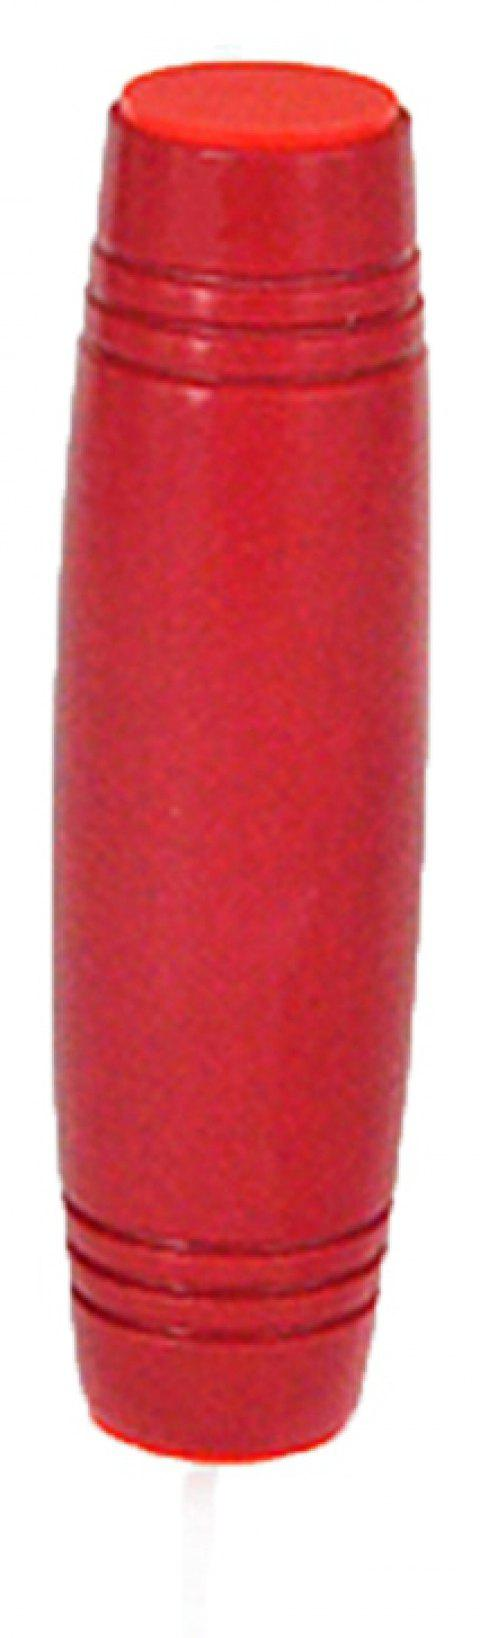 Flip the Finger Toy Magic Stick - RED